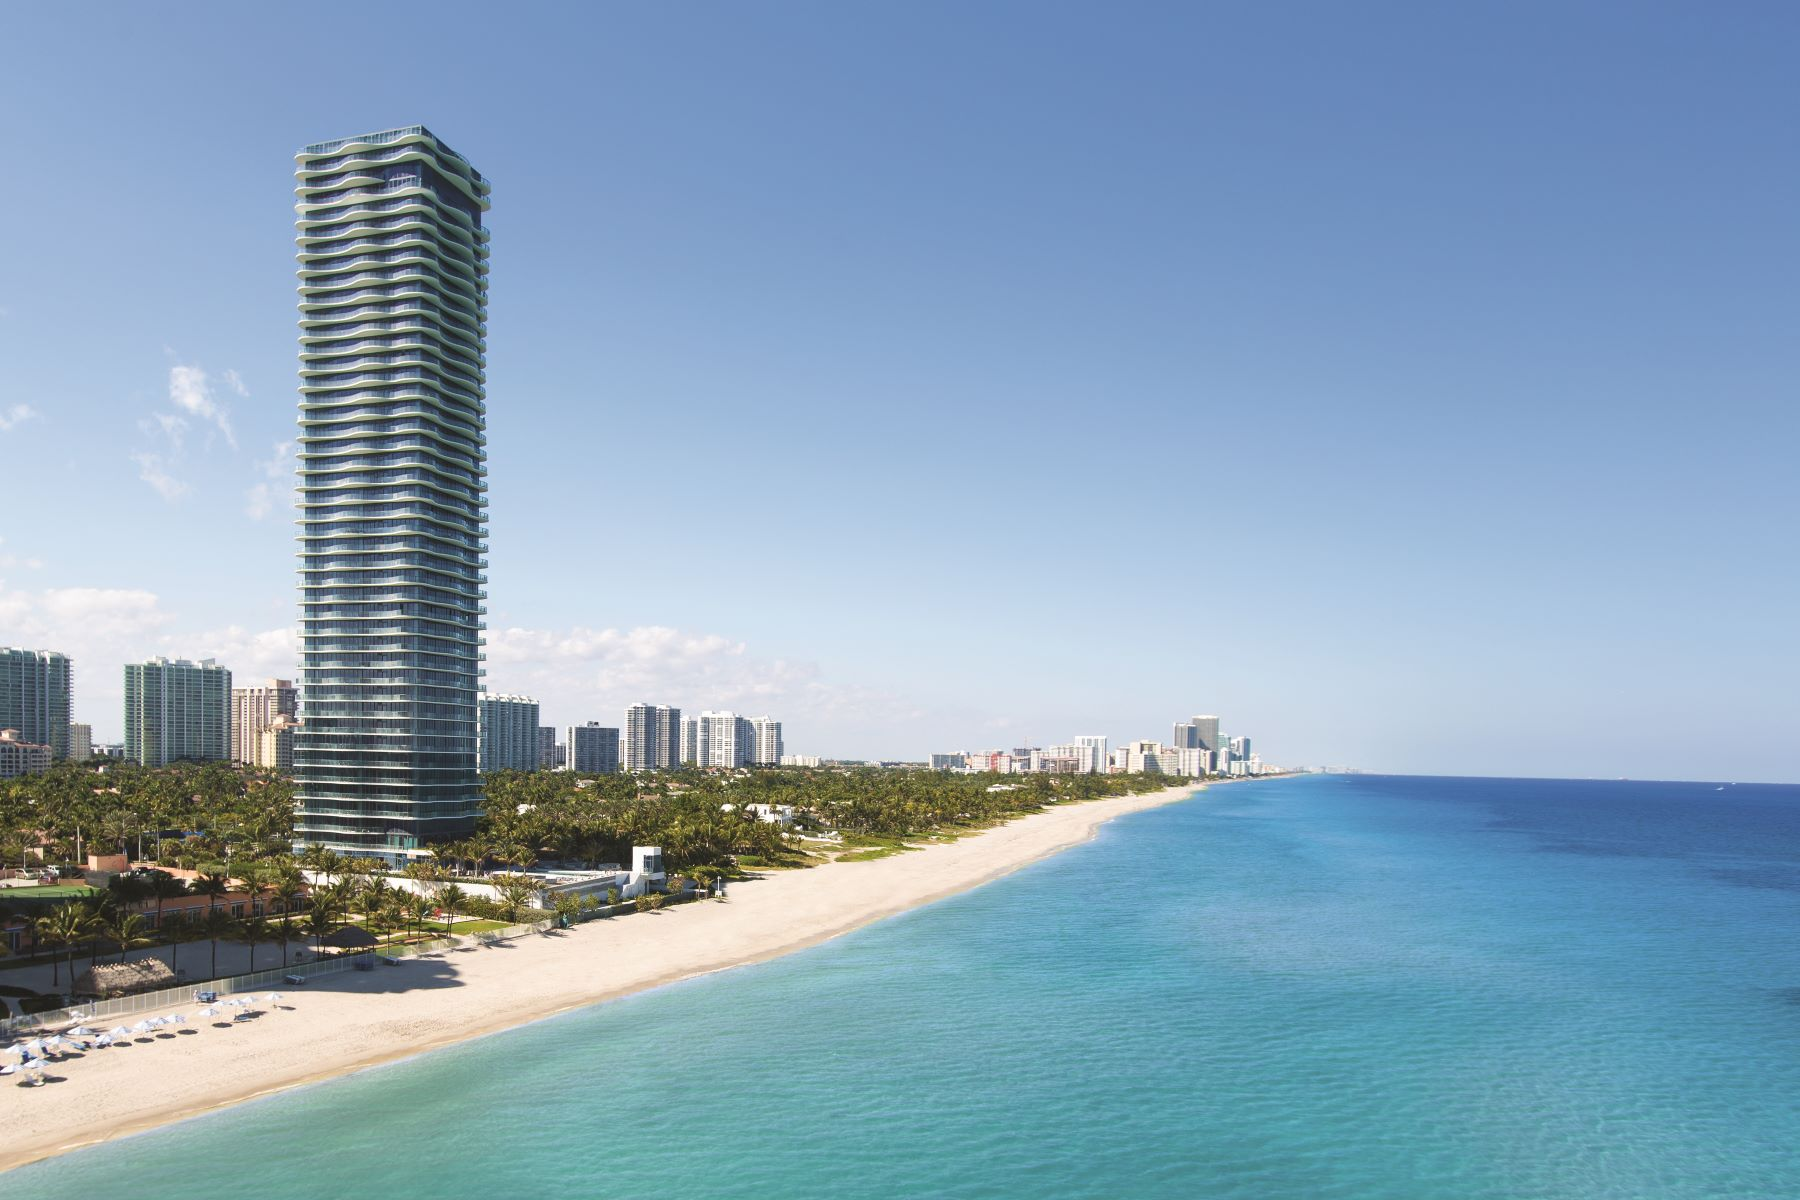 Condominium for Sale at 19575 Collins Ave #29 19575 Collins Ave 29 Sunny Isles Beach, Florida 33160 United States